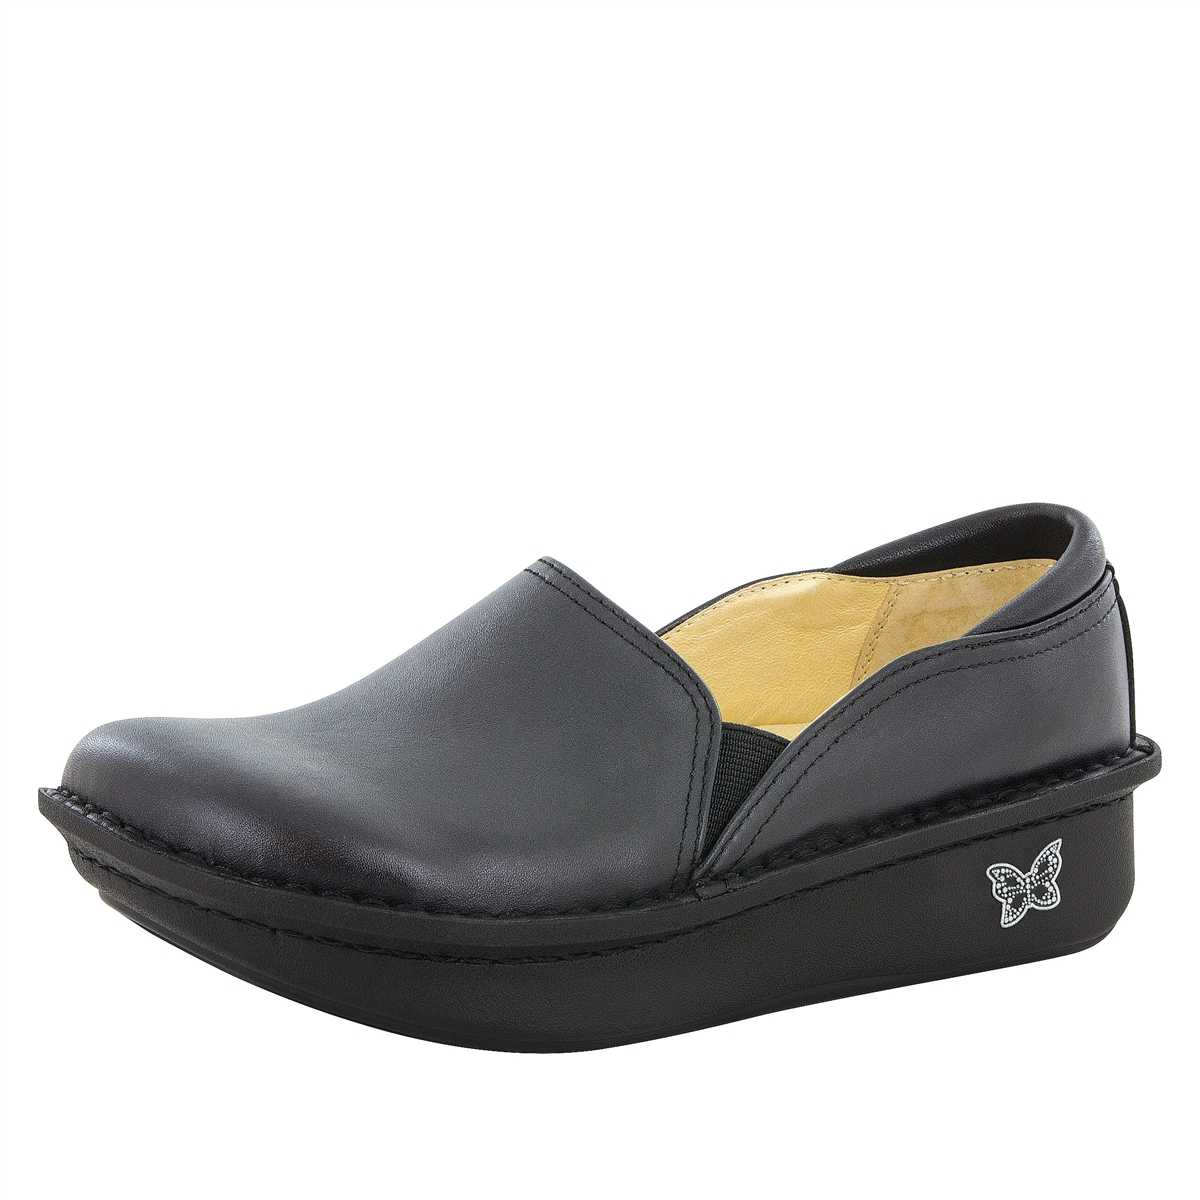 Long Black Leather Shoes